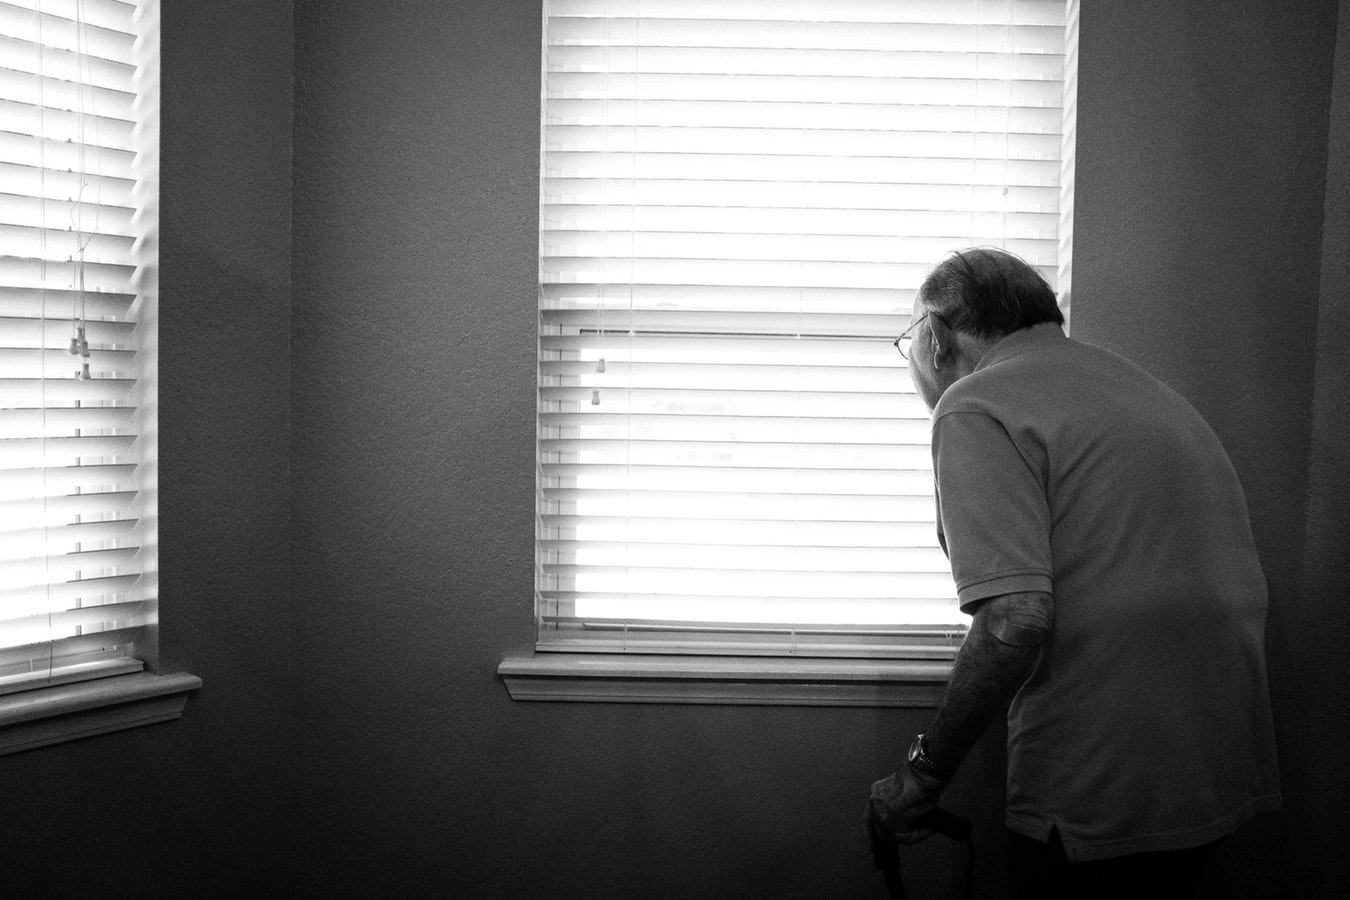 An aging parent standing by the window and looking outside.